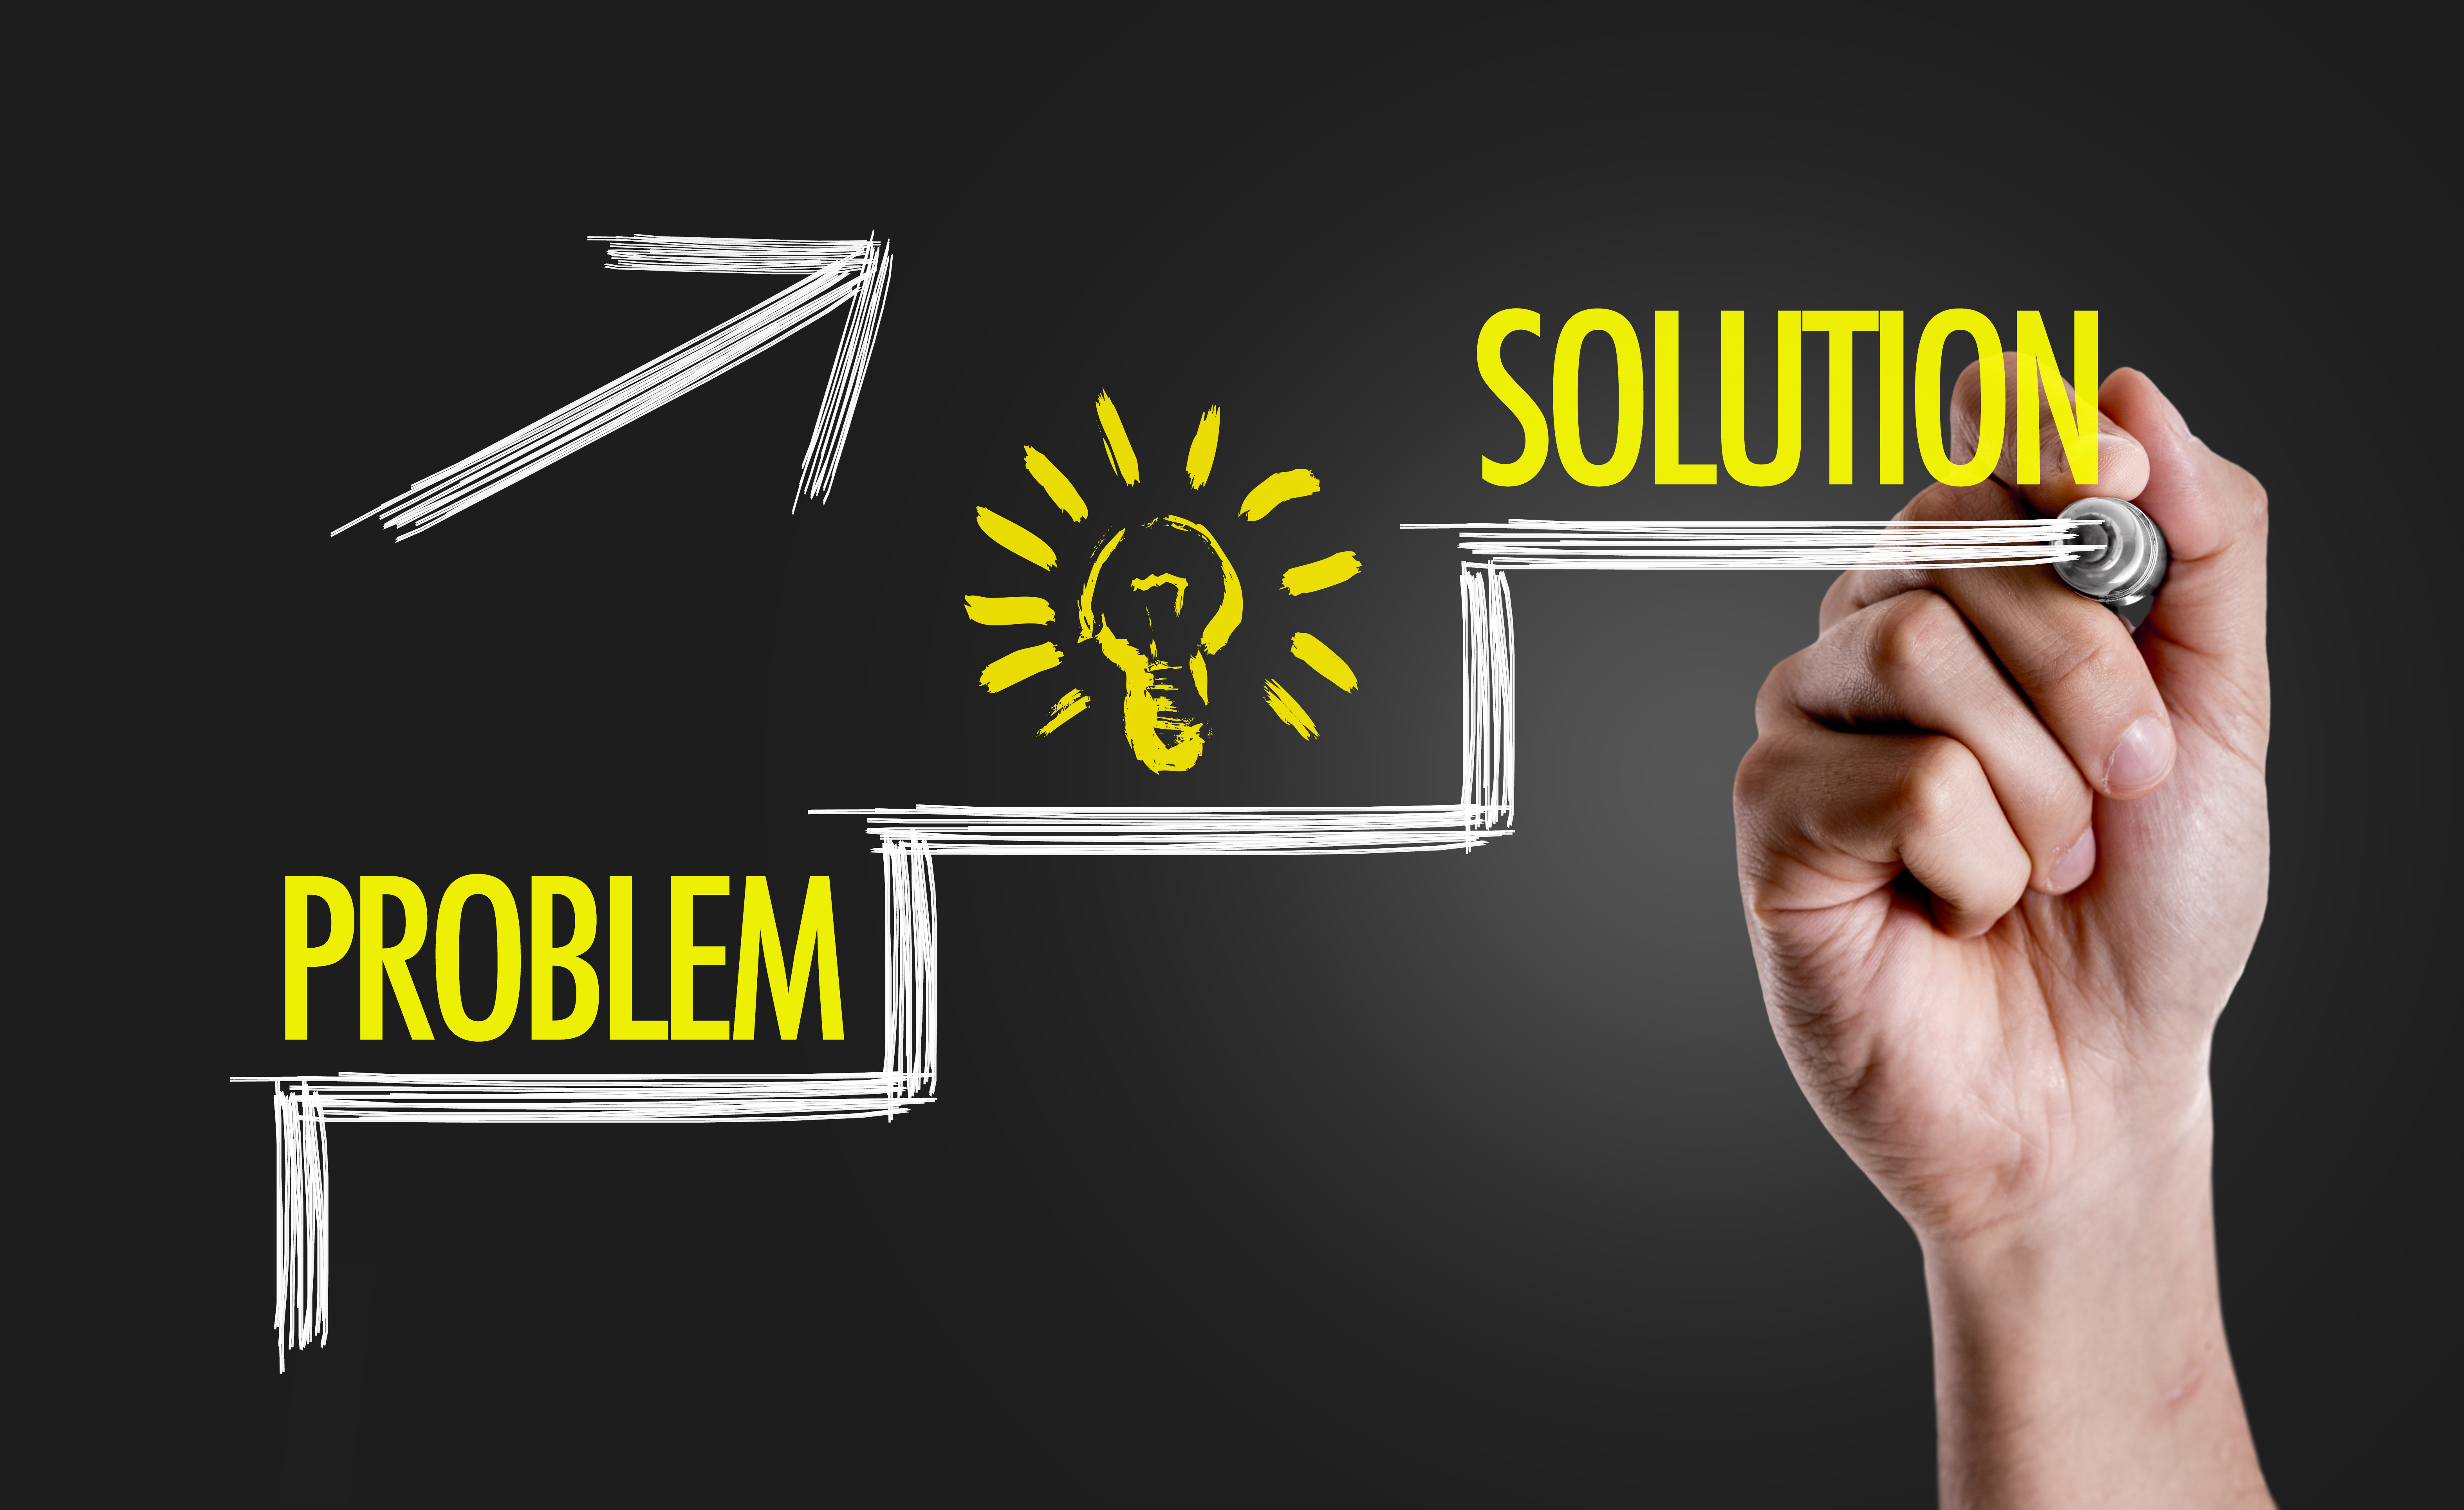 The problem solution of rmg